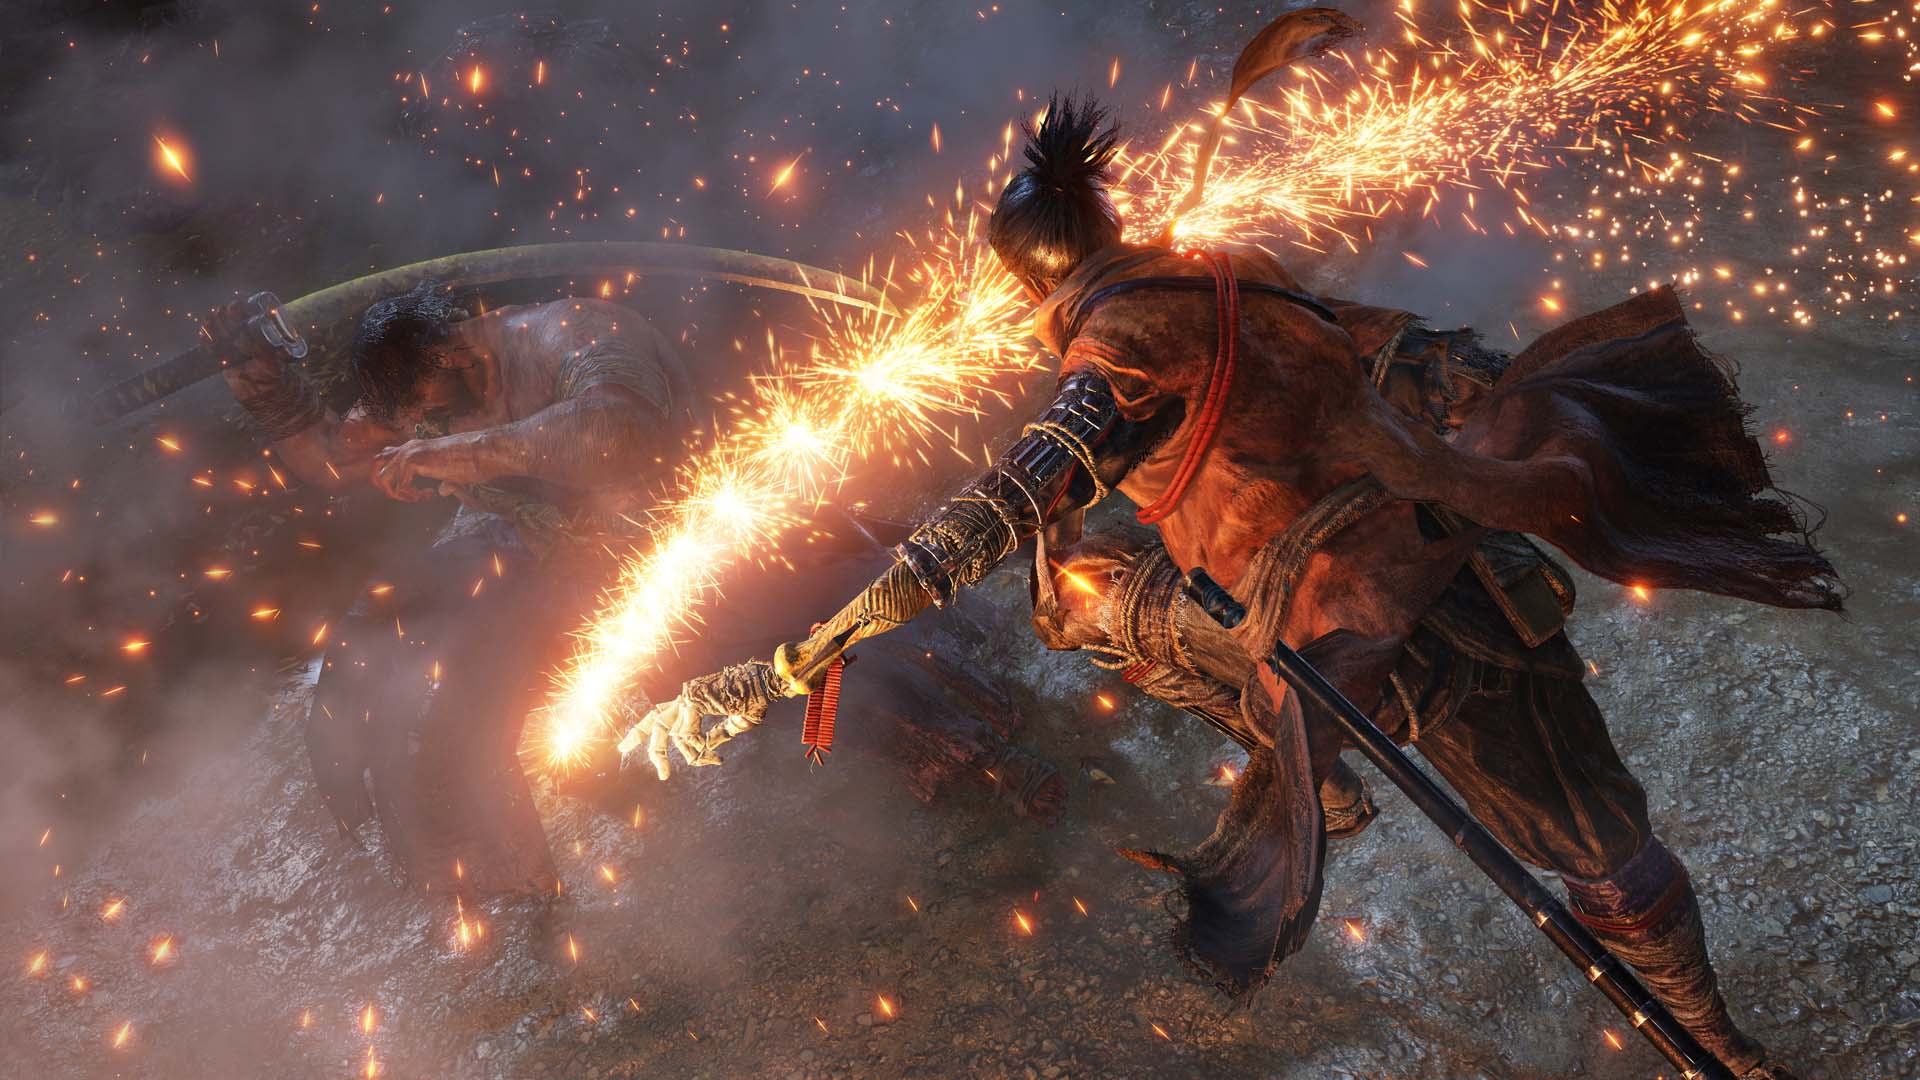 «Sekiro: Shadows Die Twice» es otro desafío tan imperfecto como imprescindible